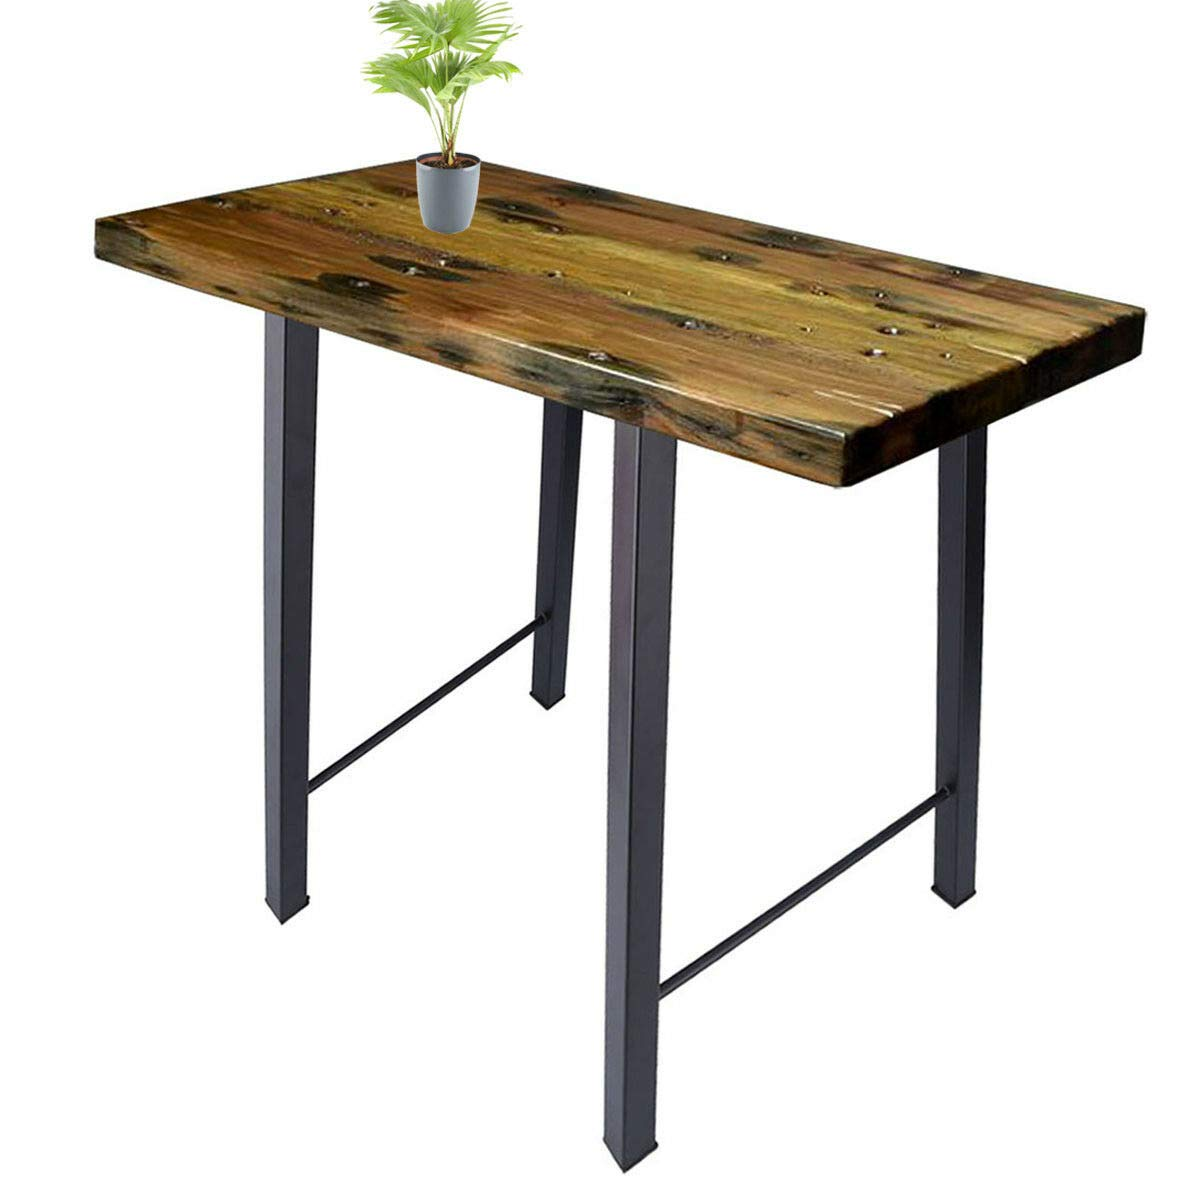 Tengchang 28'' Industry Dinner Table Leg Metal Steel Bench Legs DIY Furniture by Tengchang (Image #5)